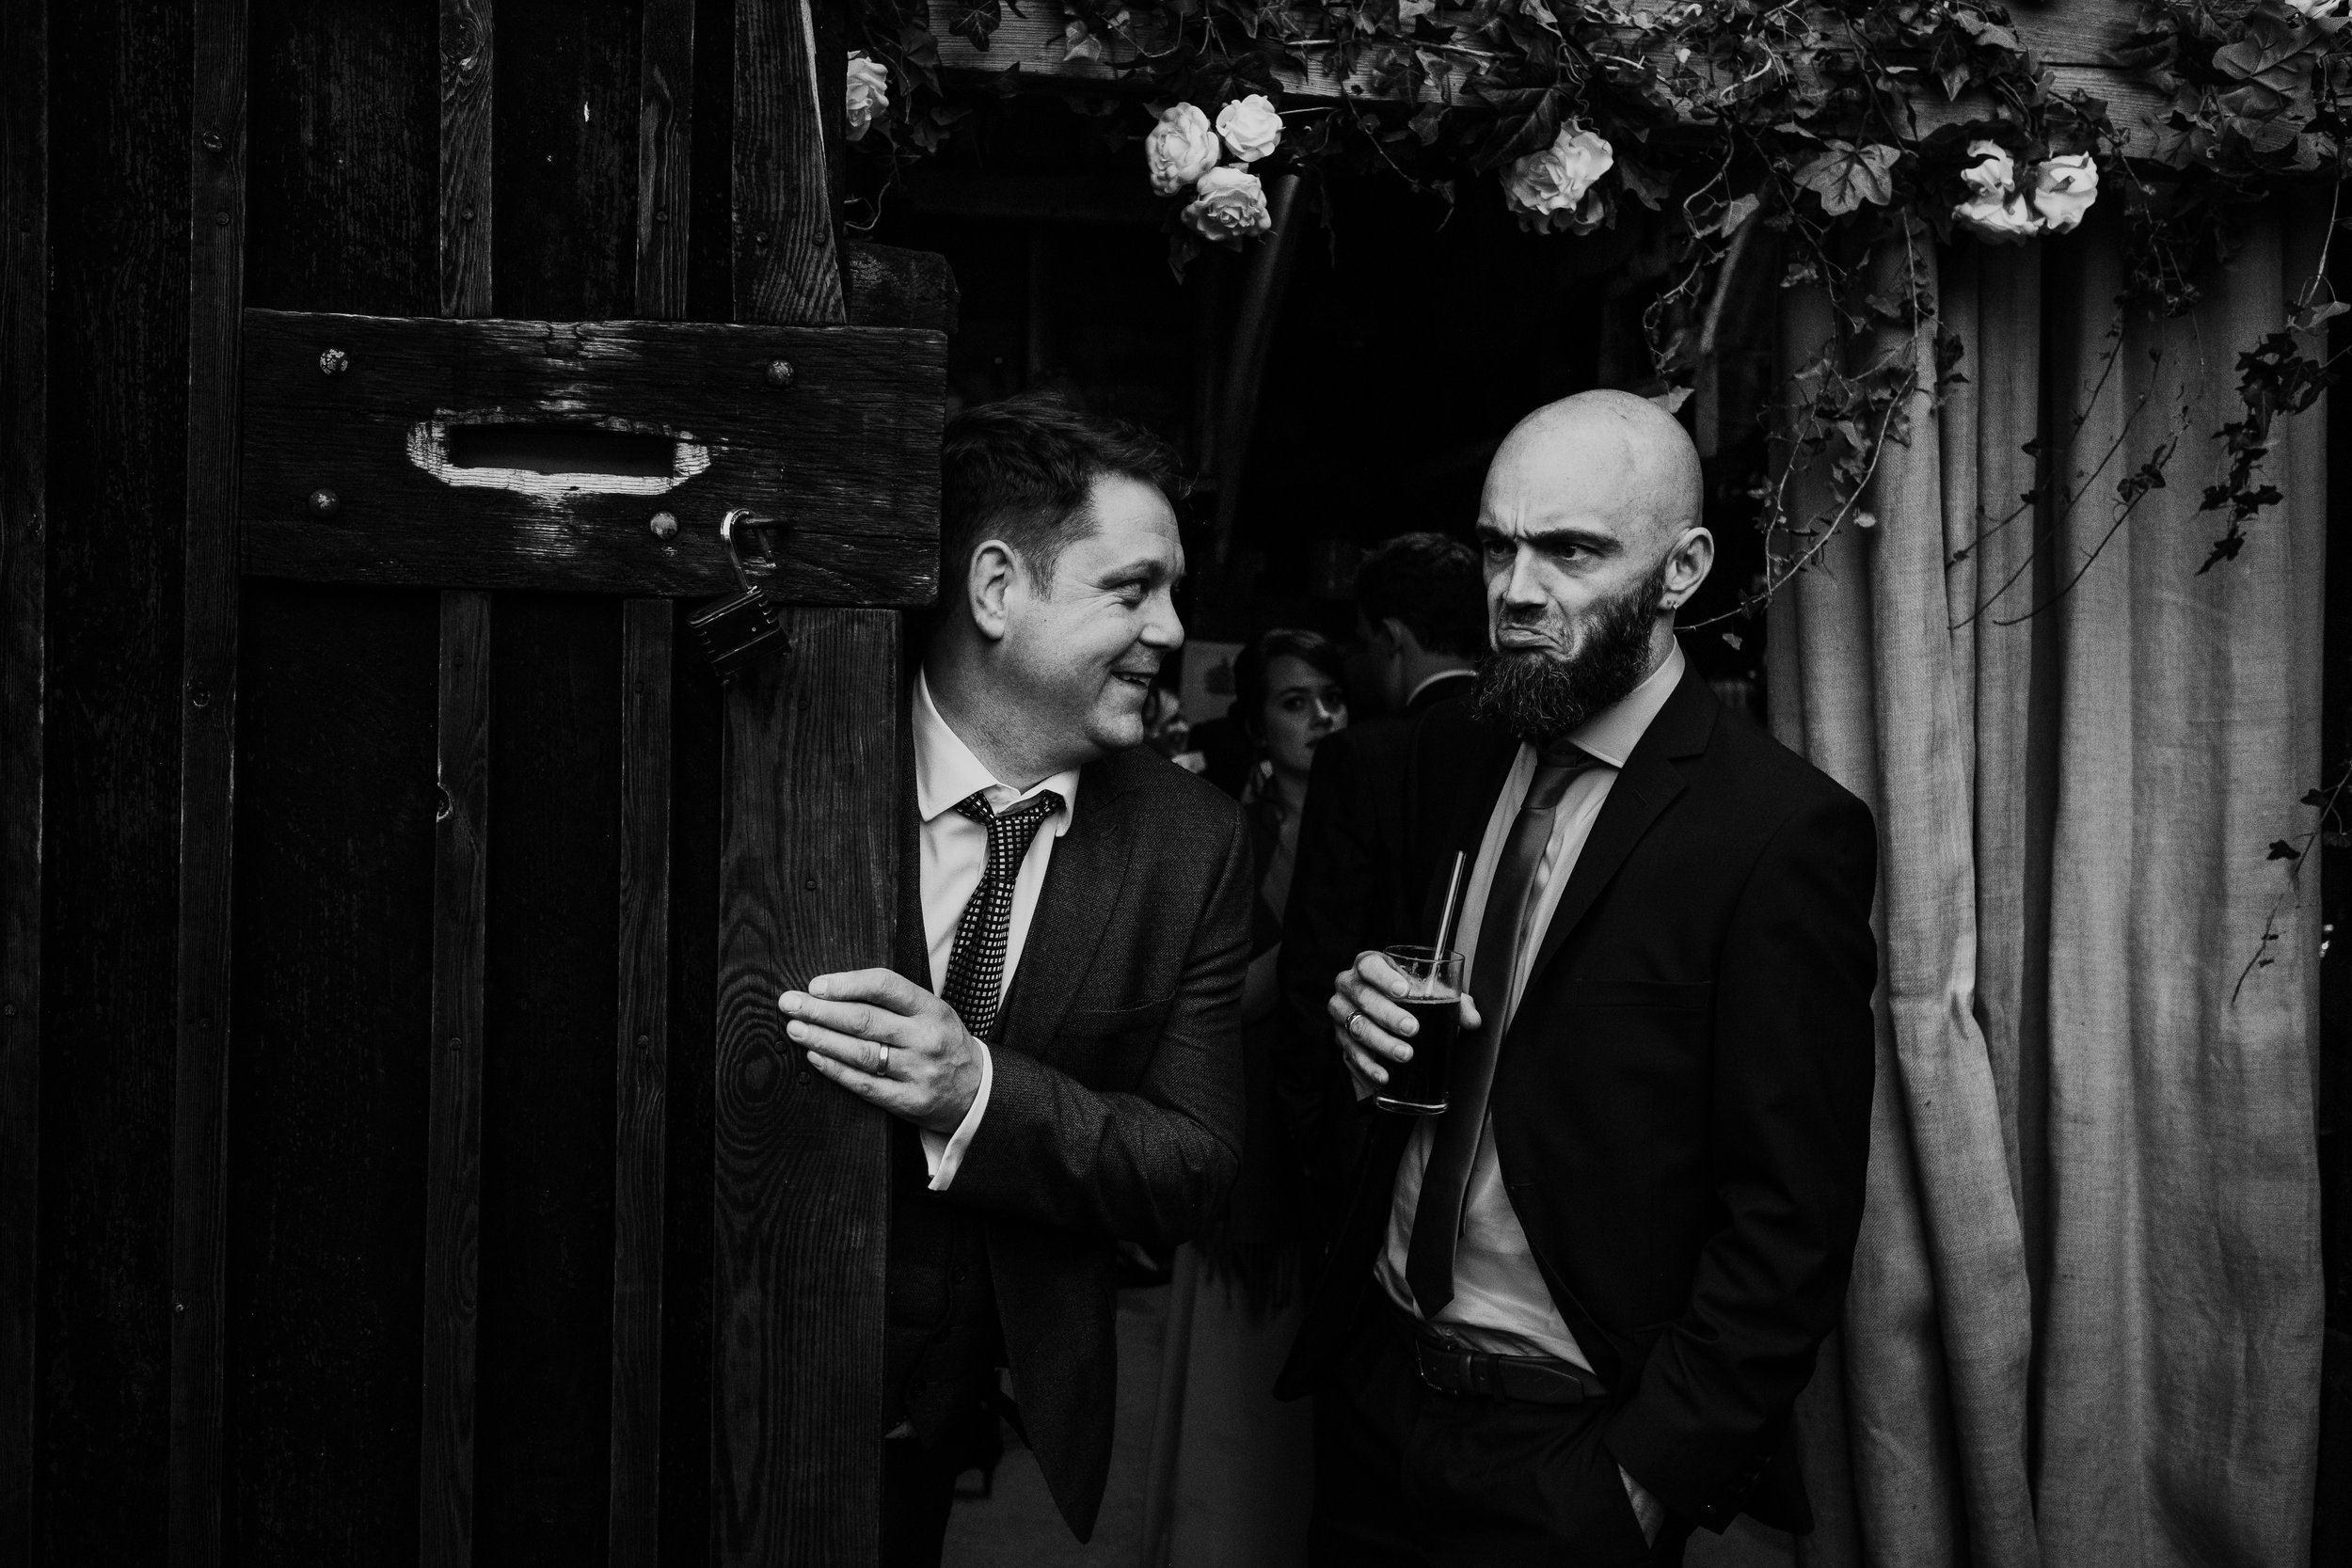 Guests laughing and pulling faces at wedding